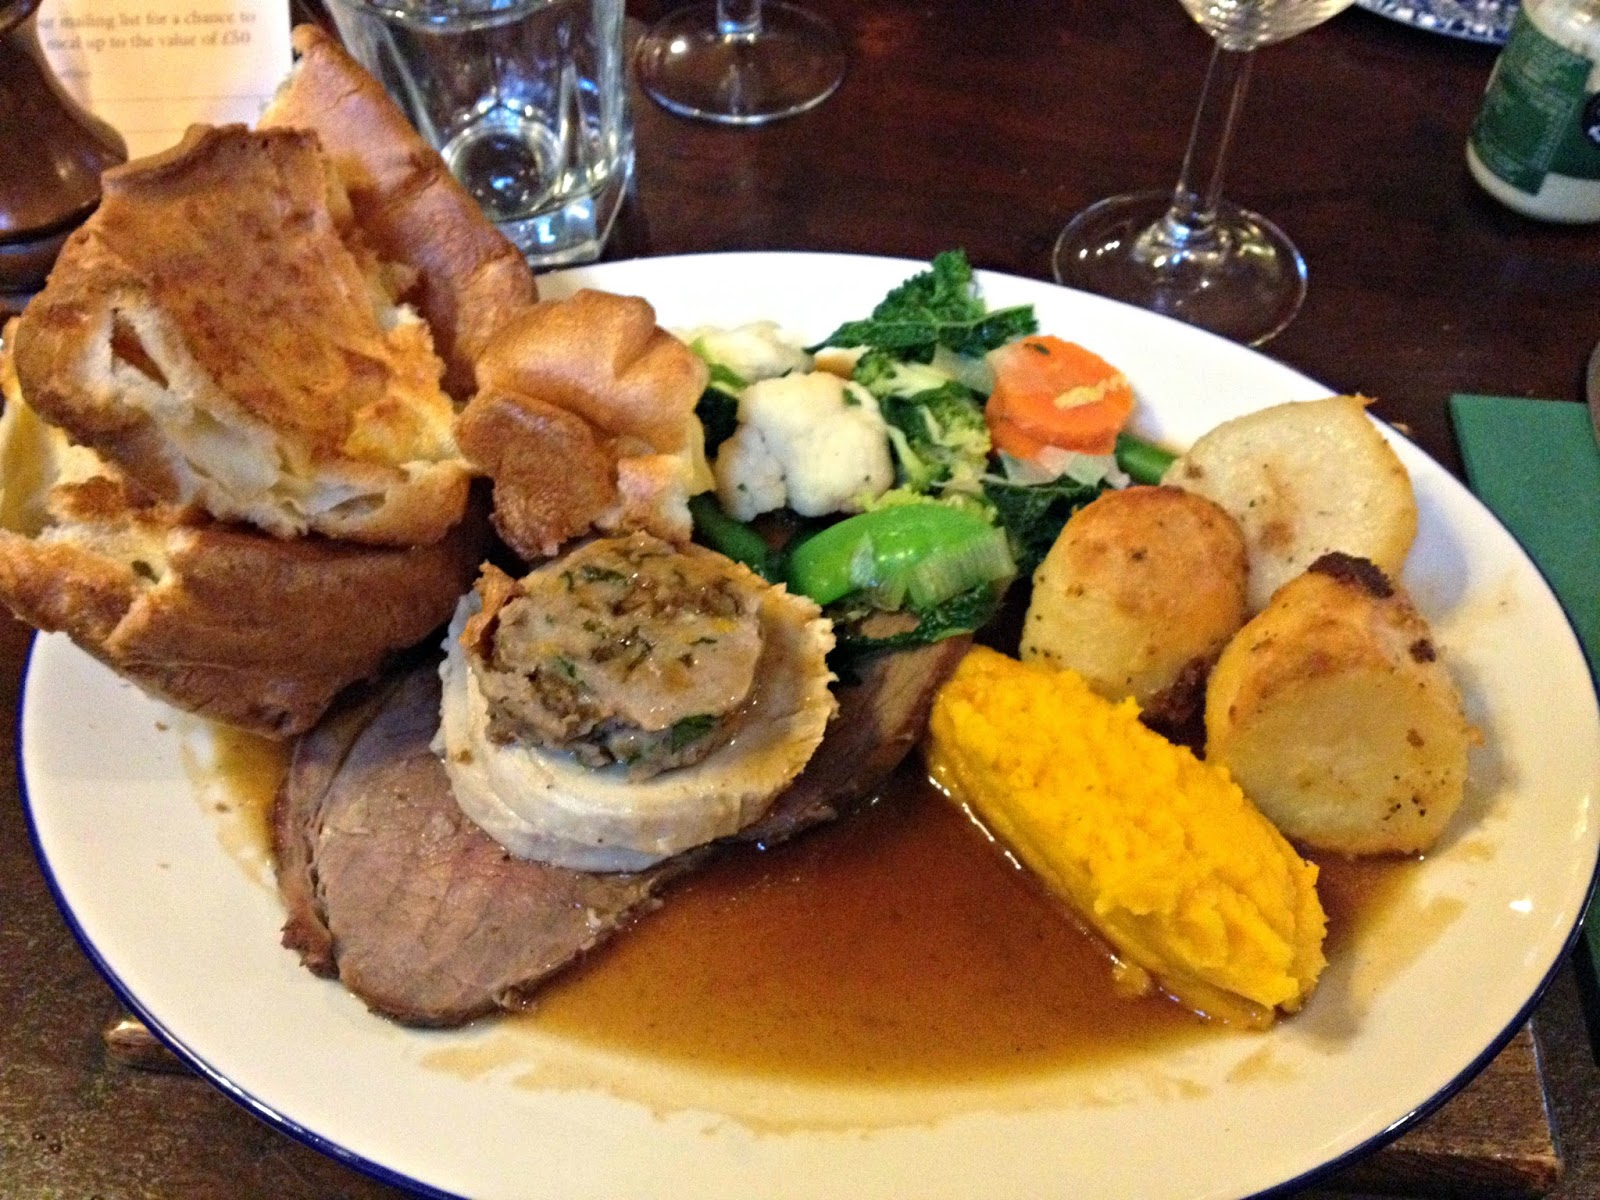 Old Orchard Sunday Roast